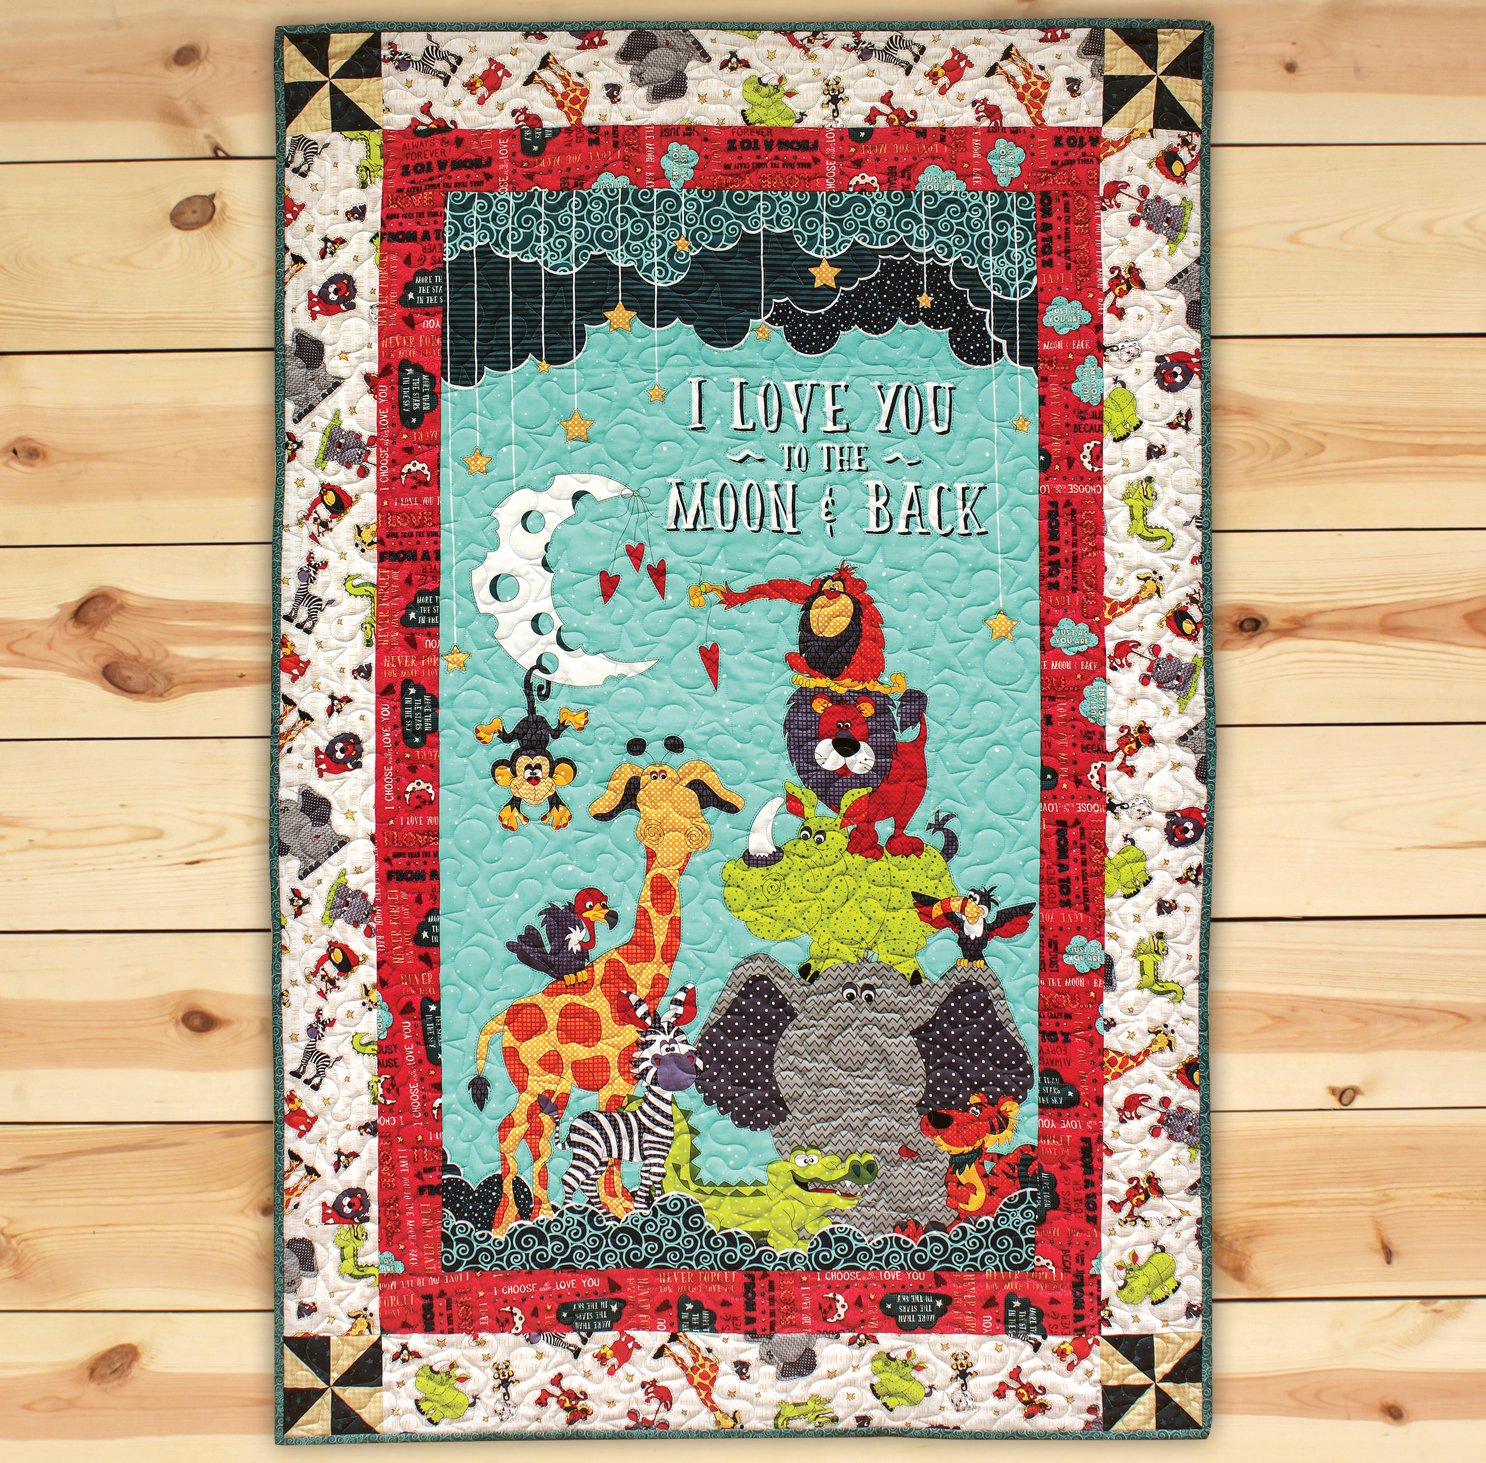 Moon & Back Panel Quilt